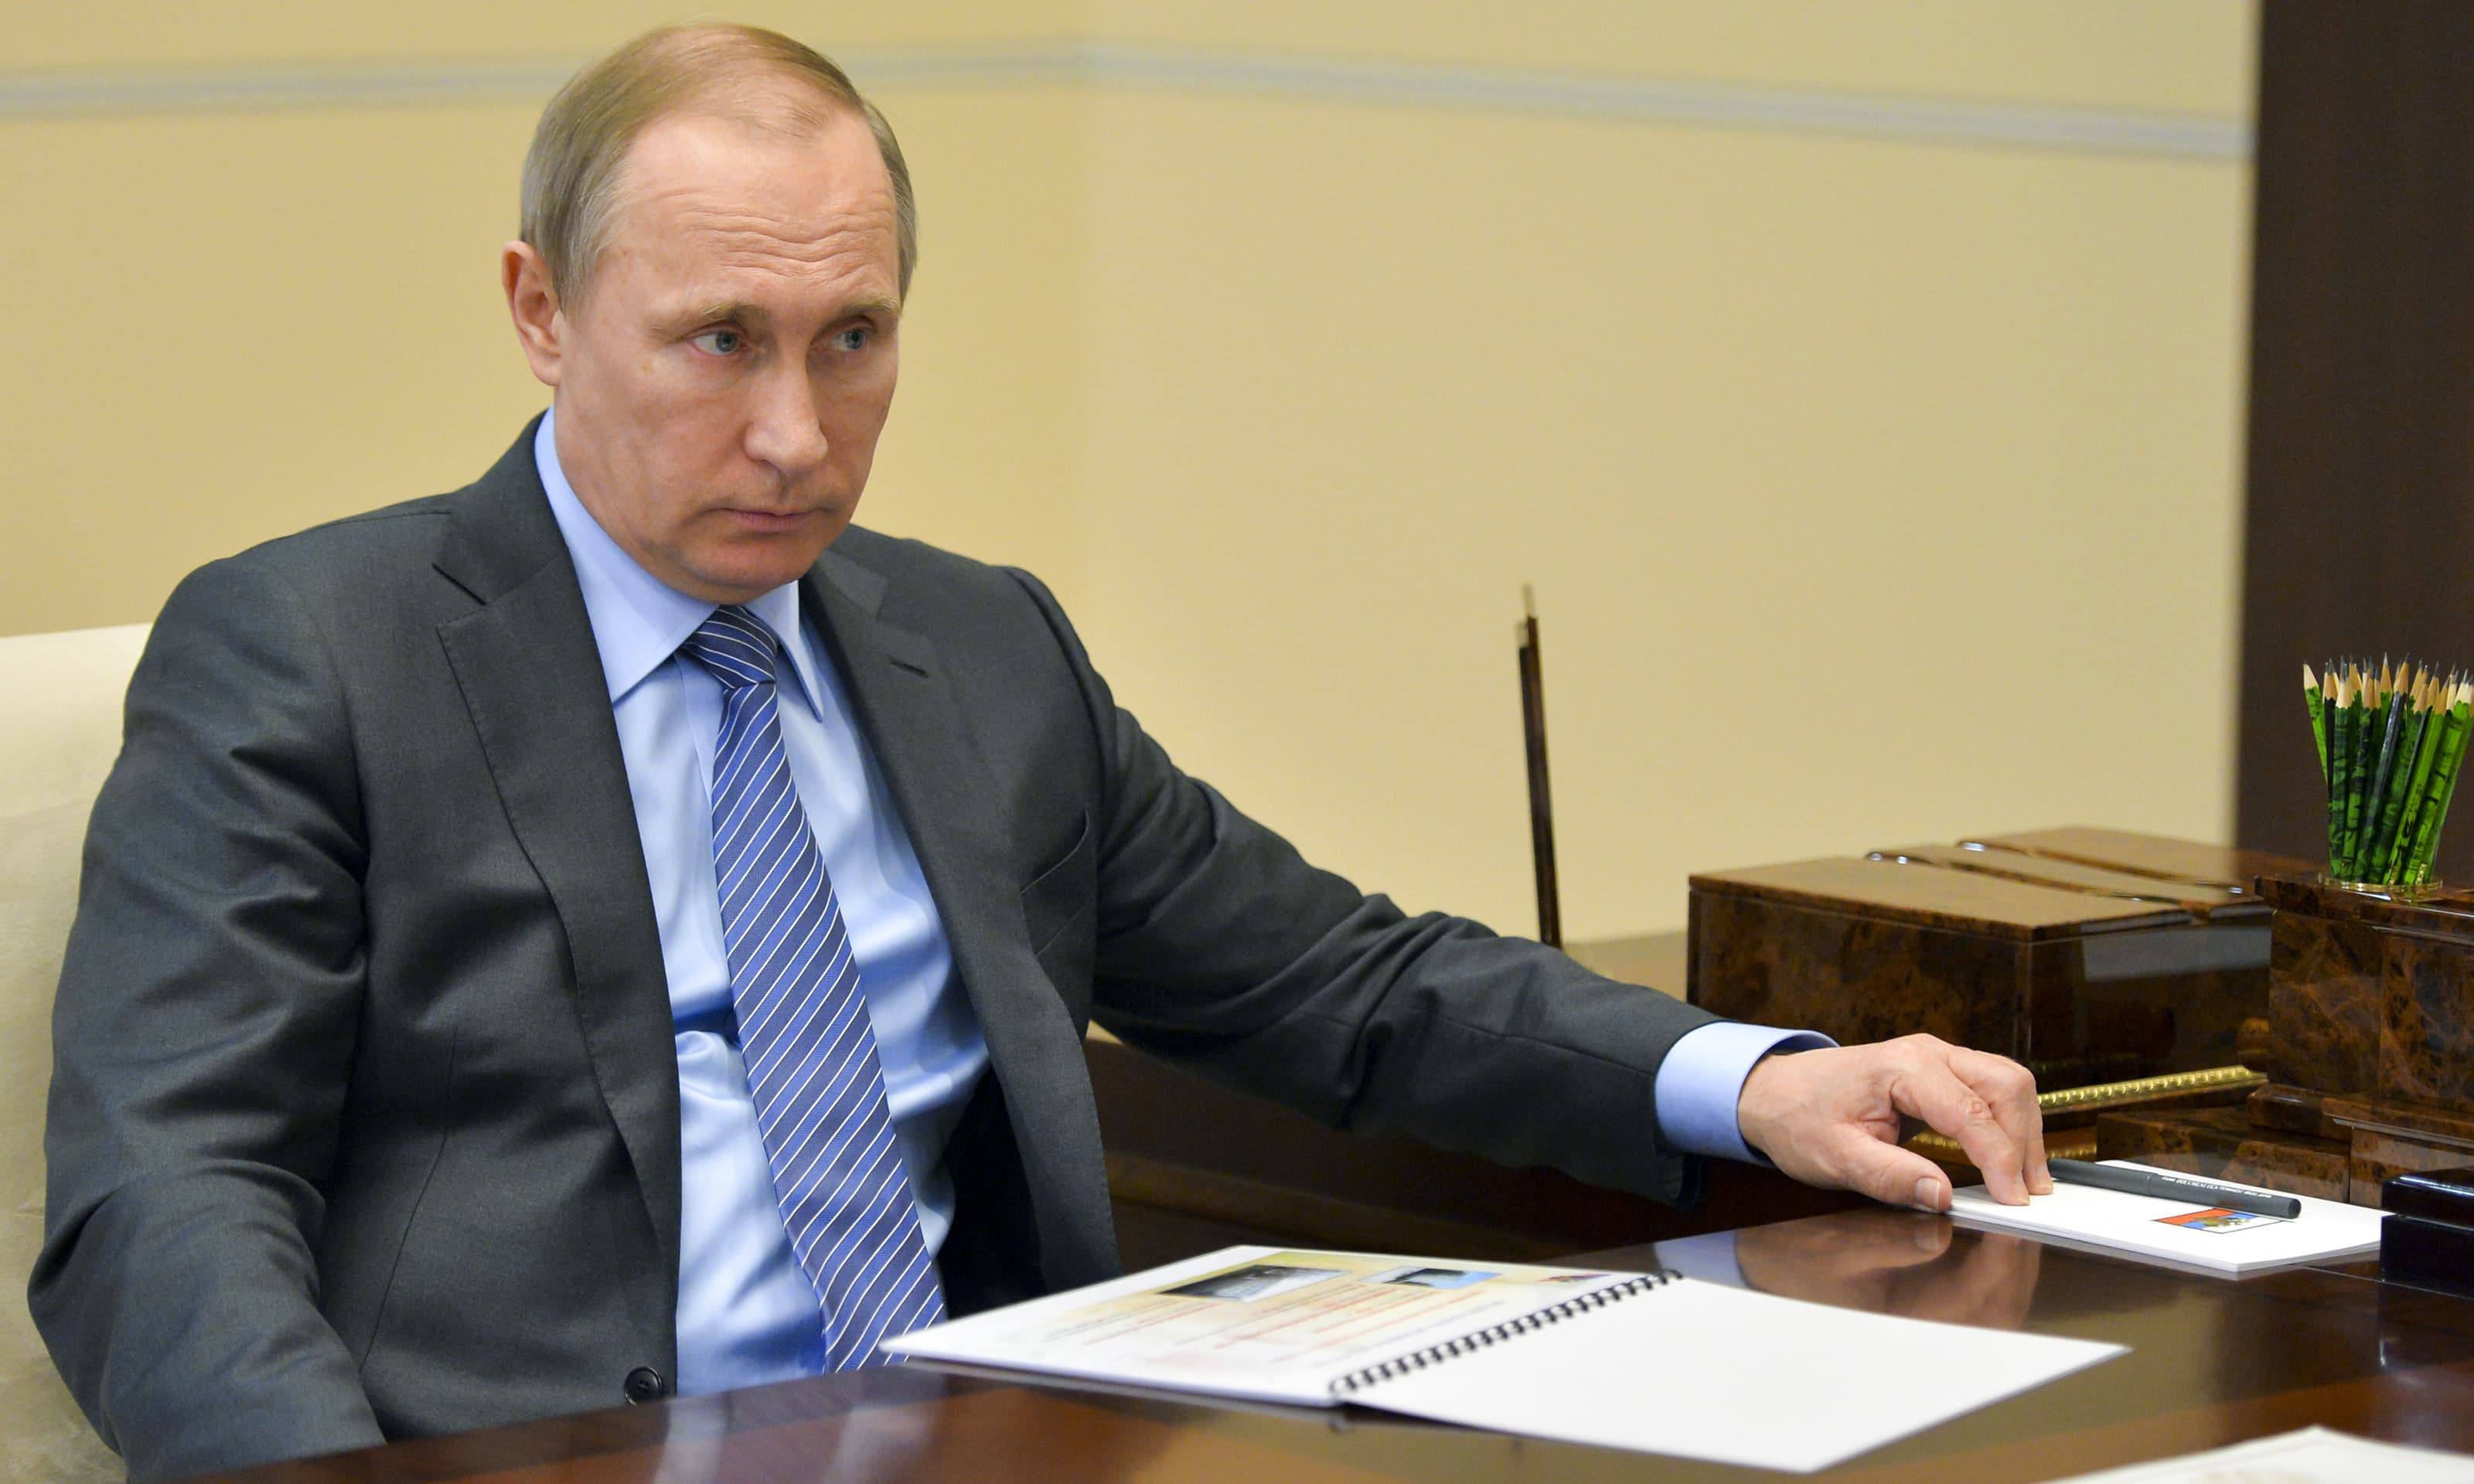 Putin listens during a meeting in the Novo-Ogaryov residence. —AP